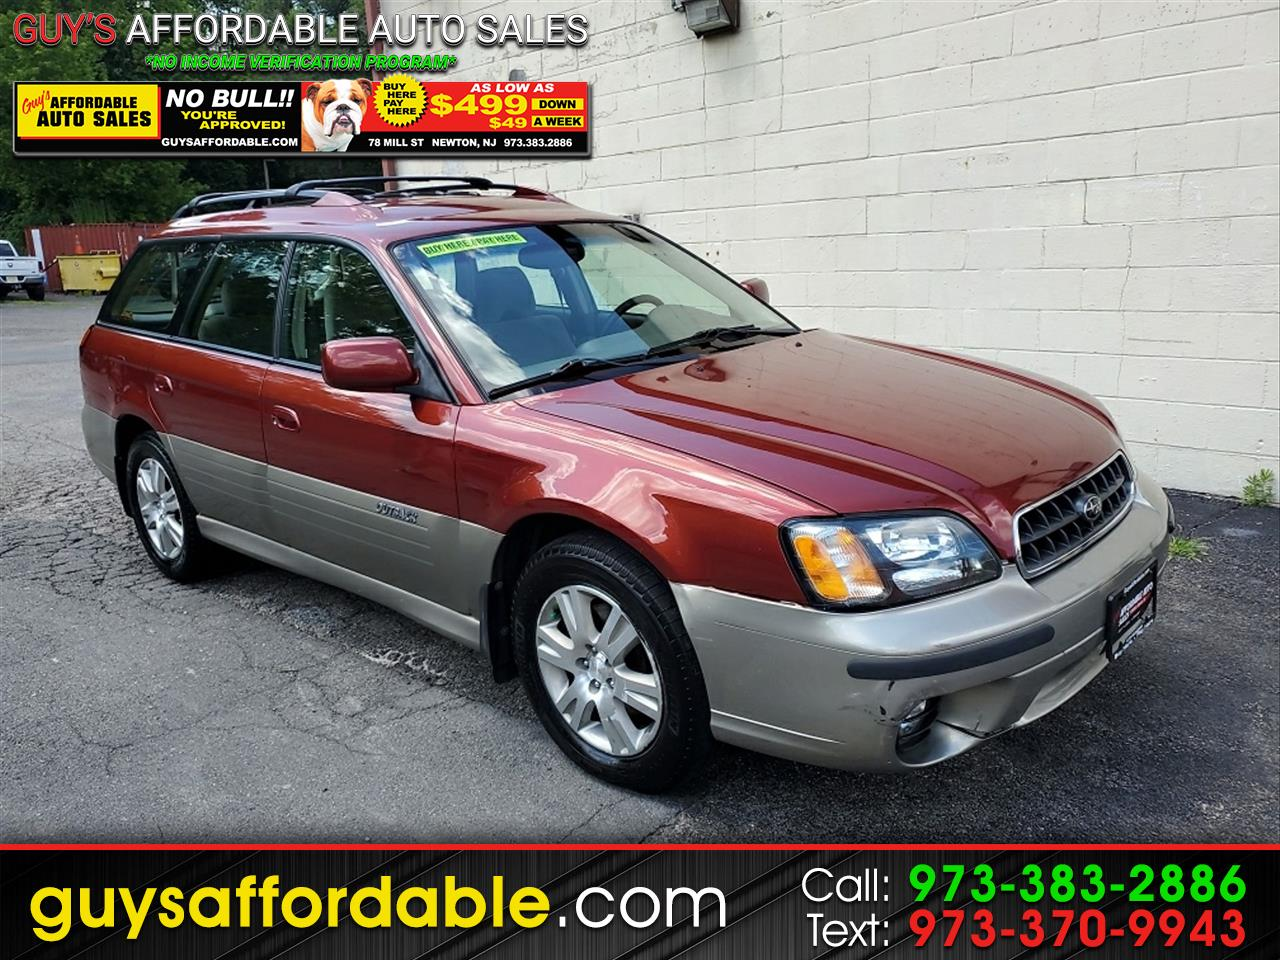 Subaru Outback H6-3.0 35th Anniversary Edition Wagon 2004